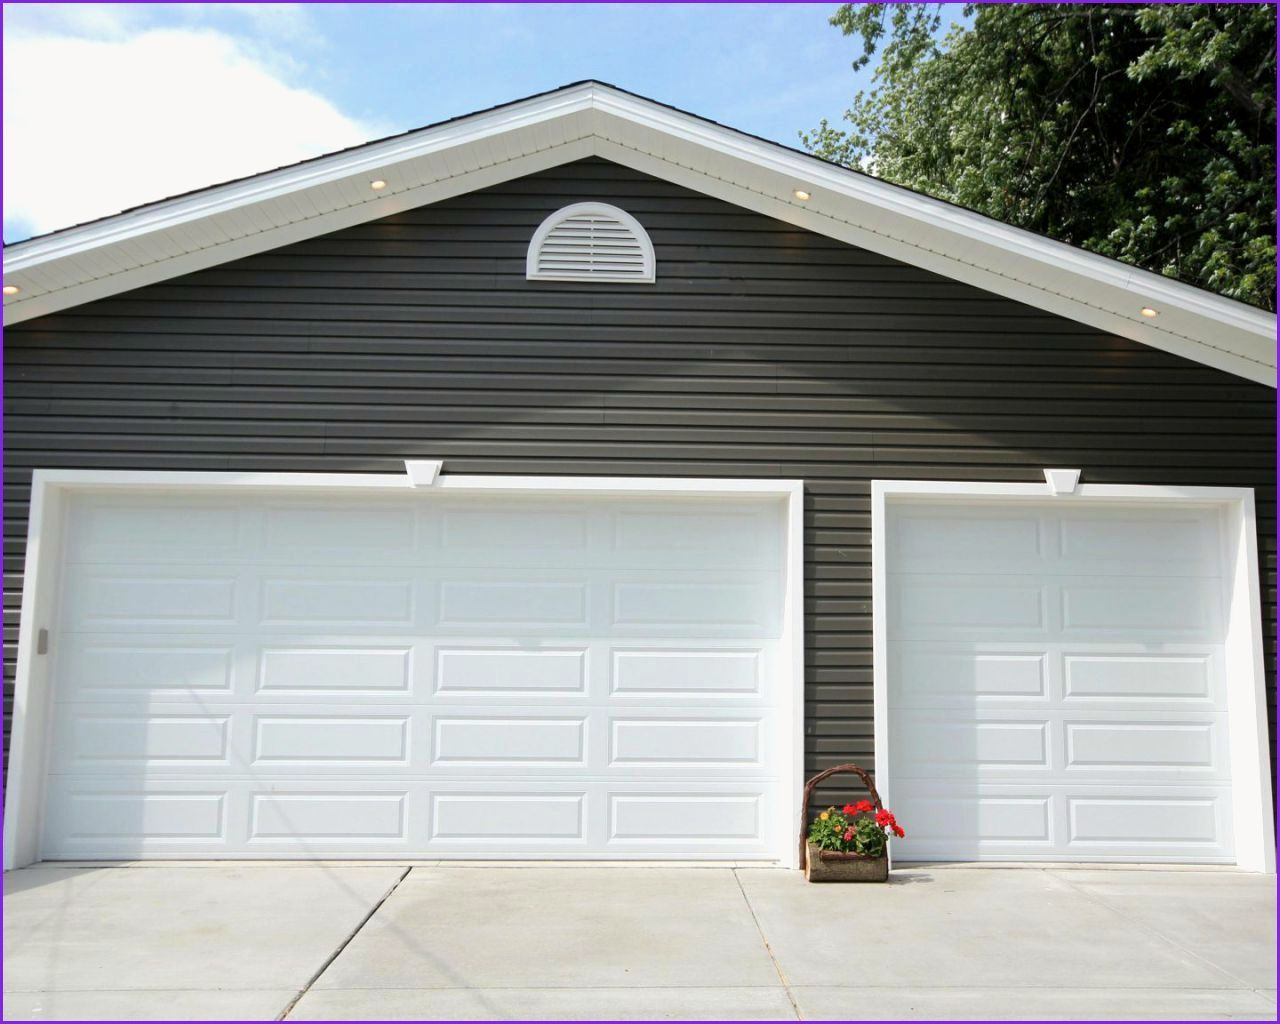 Awesome Garage Door Costco Garage Doors Garage Door Design Barn Style Garage Doors